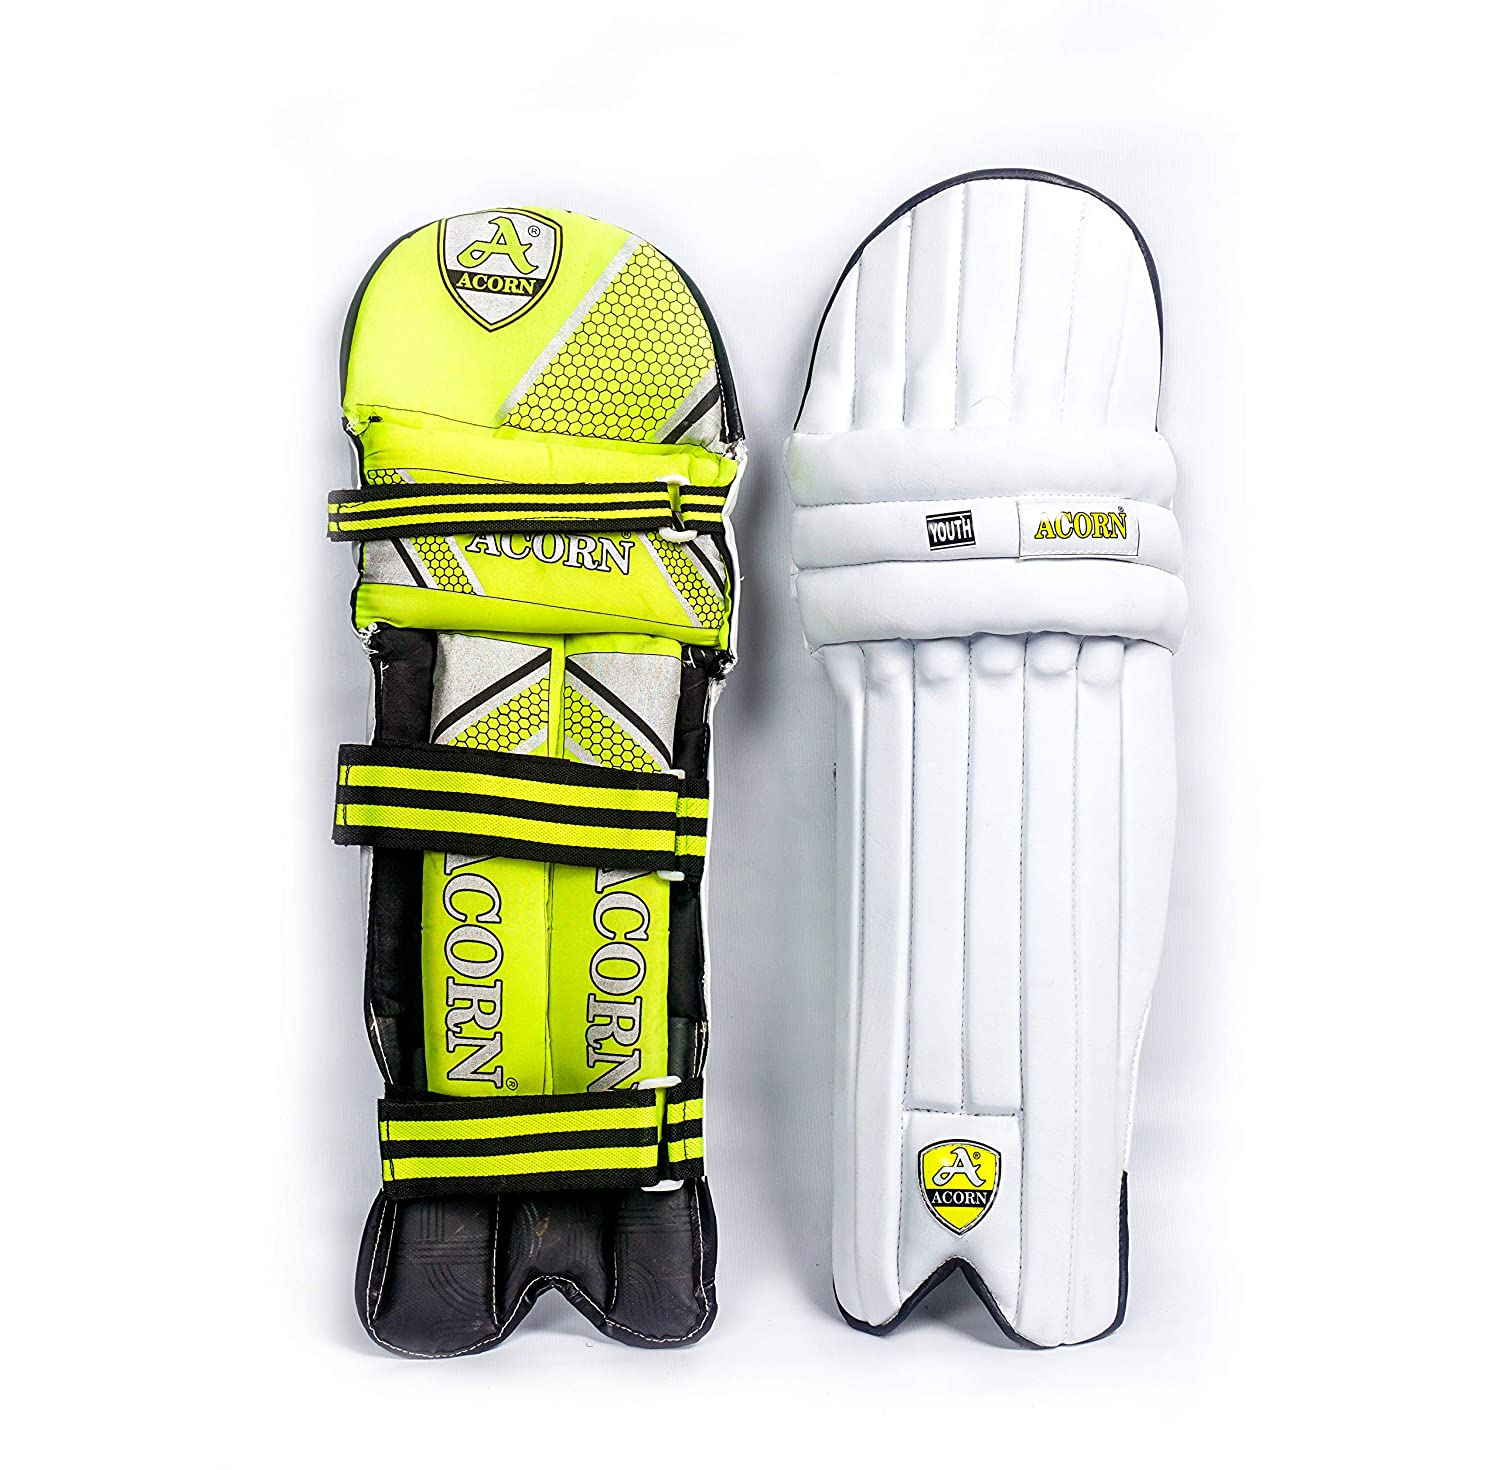 Batting Leg Guard - Top Quality (Comfortable)